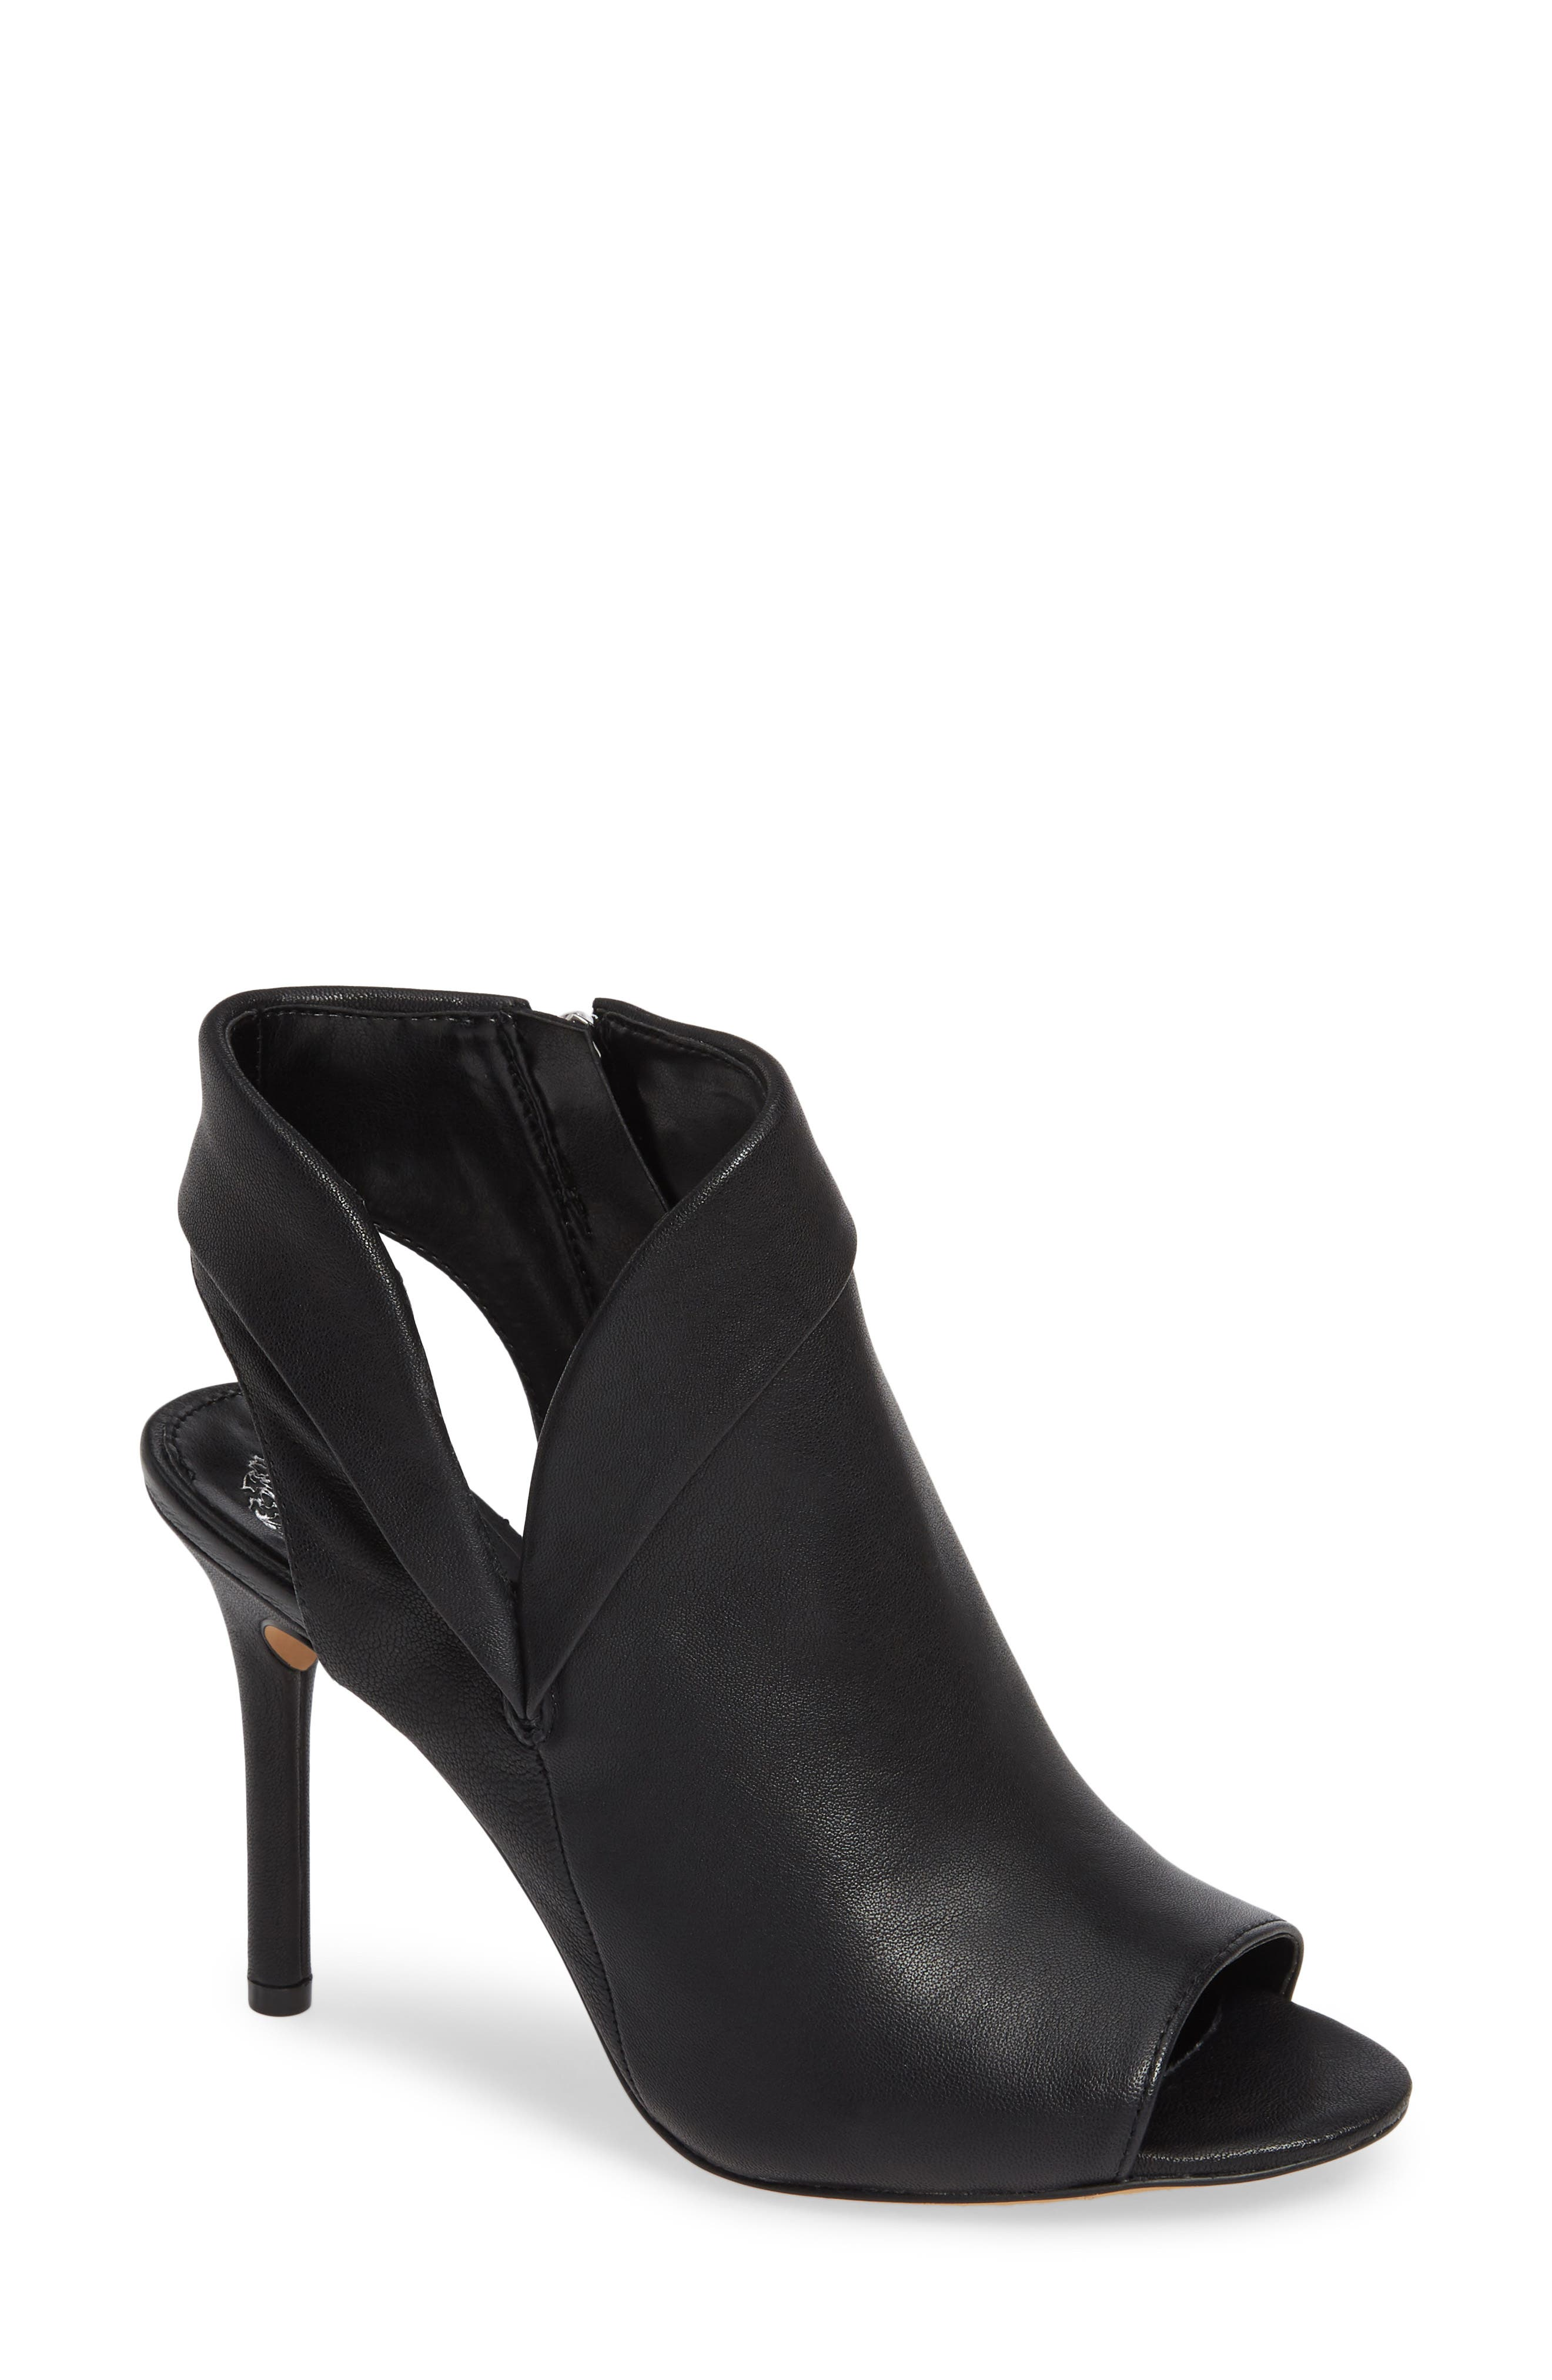 VINCE CAMUTO Cholia Asymmetrical Sandal Bootie, Main, color, BLACK LEATHER